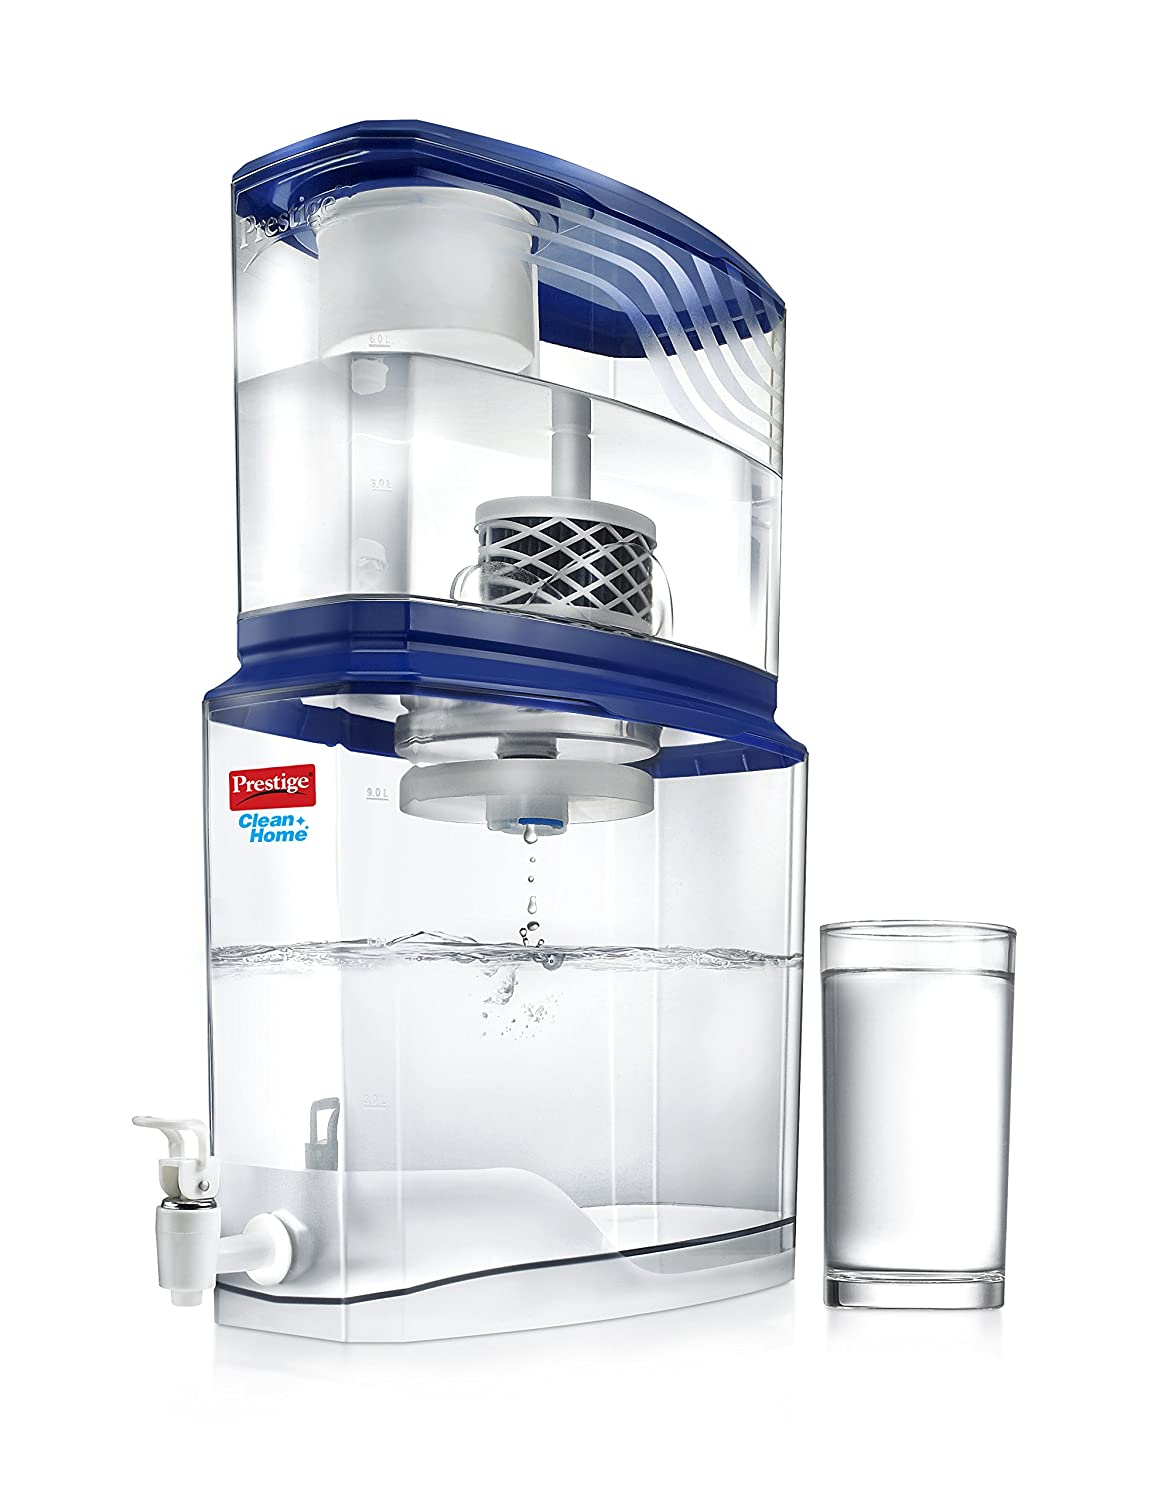 Prestige PSWP 2.0+49002 18L Gravity Based Water Purifier Image